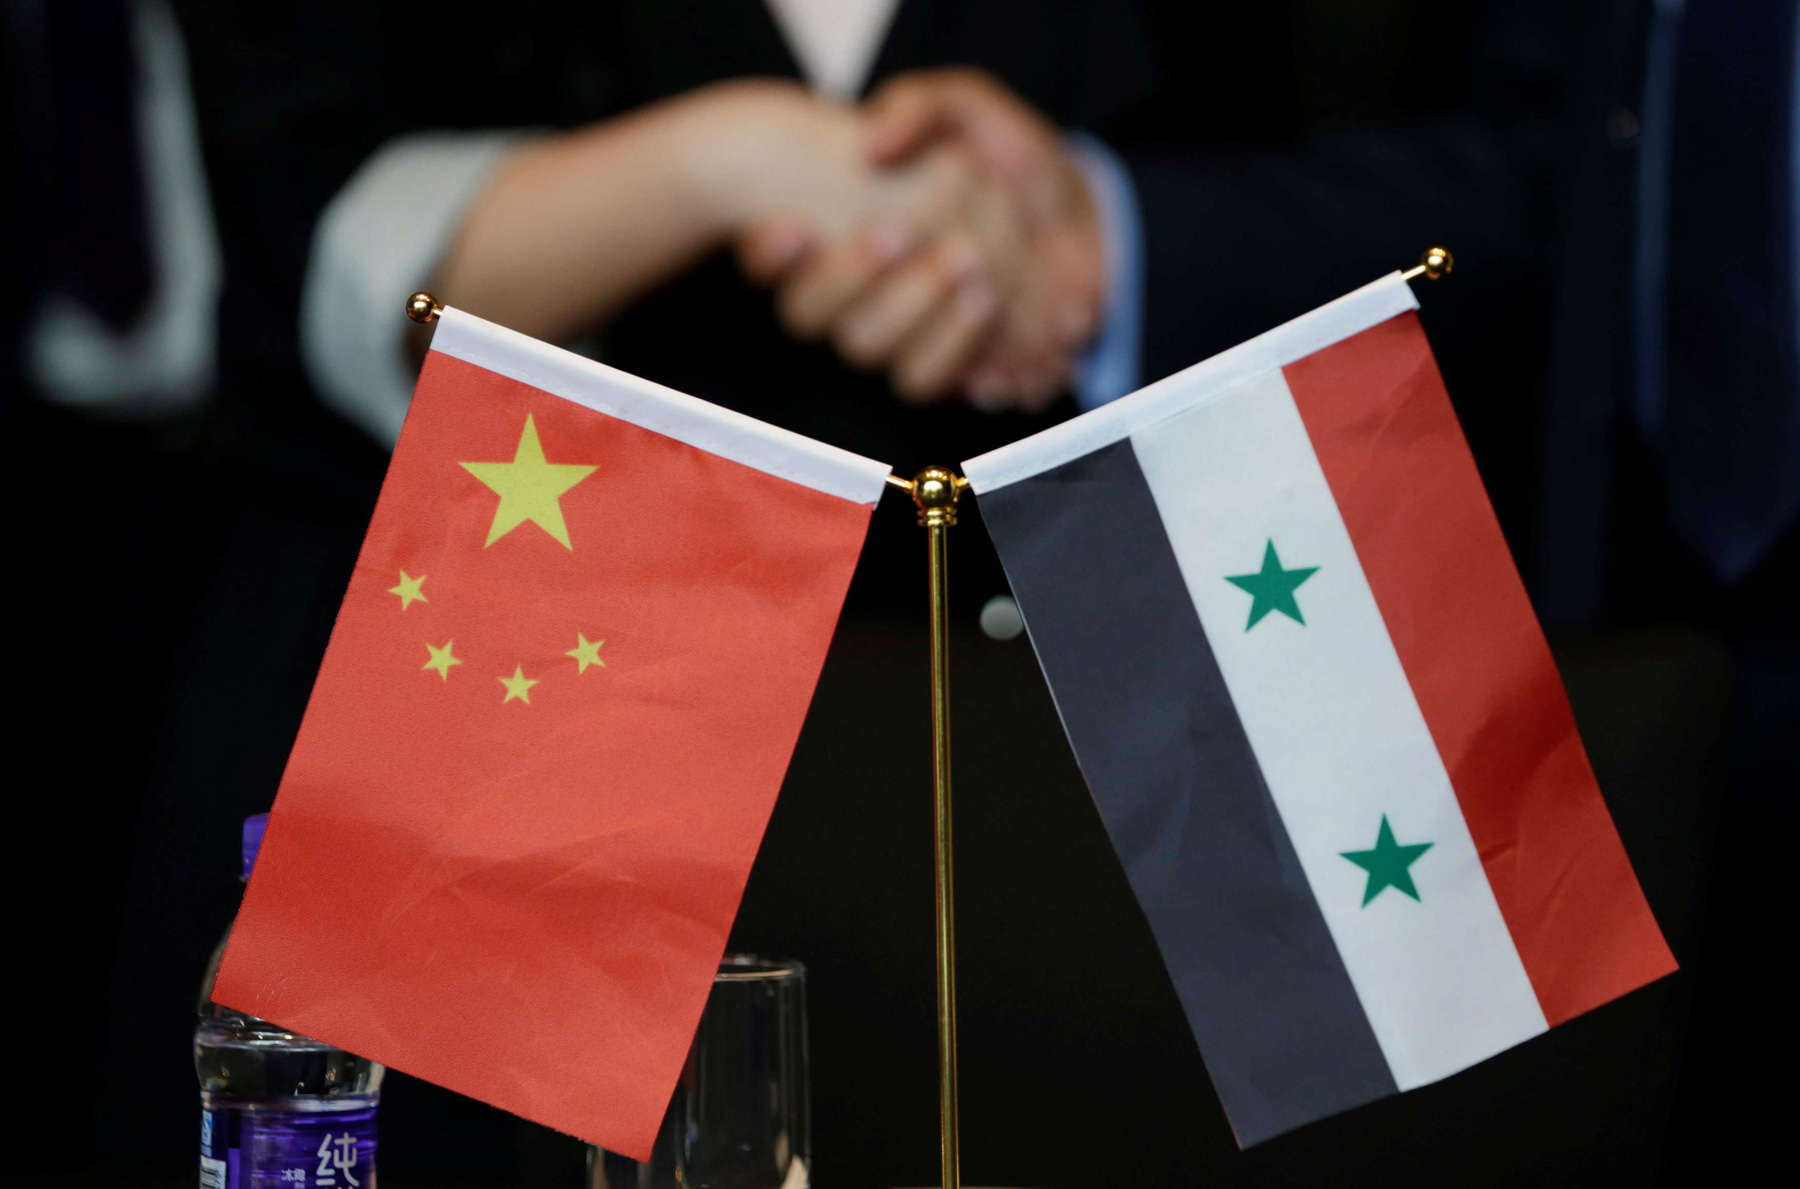 Economic diplomacy. Chinese and Syrian businessmen shake hands behind their national flags during a meeting to discuss Syria's reconstruction in Beijing, last May.  (Reuters)